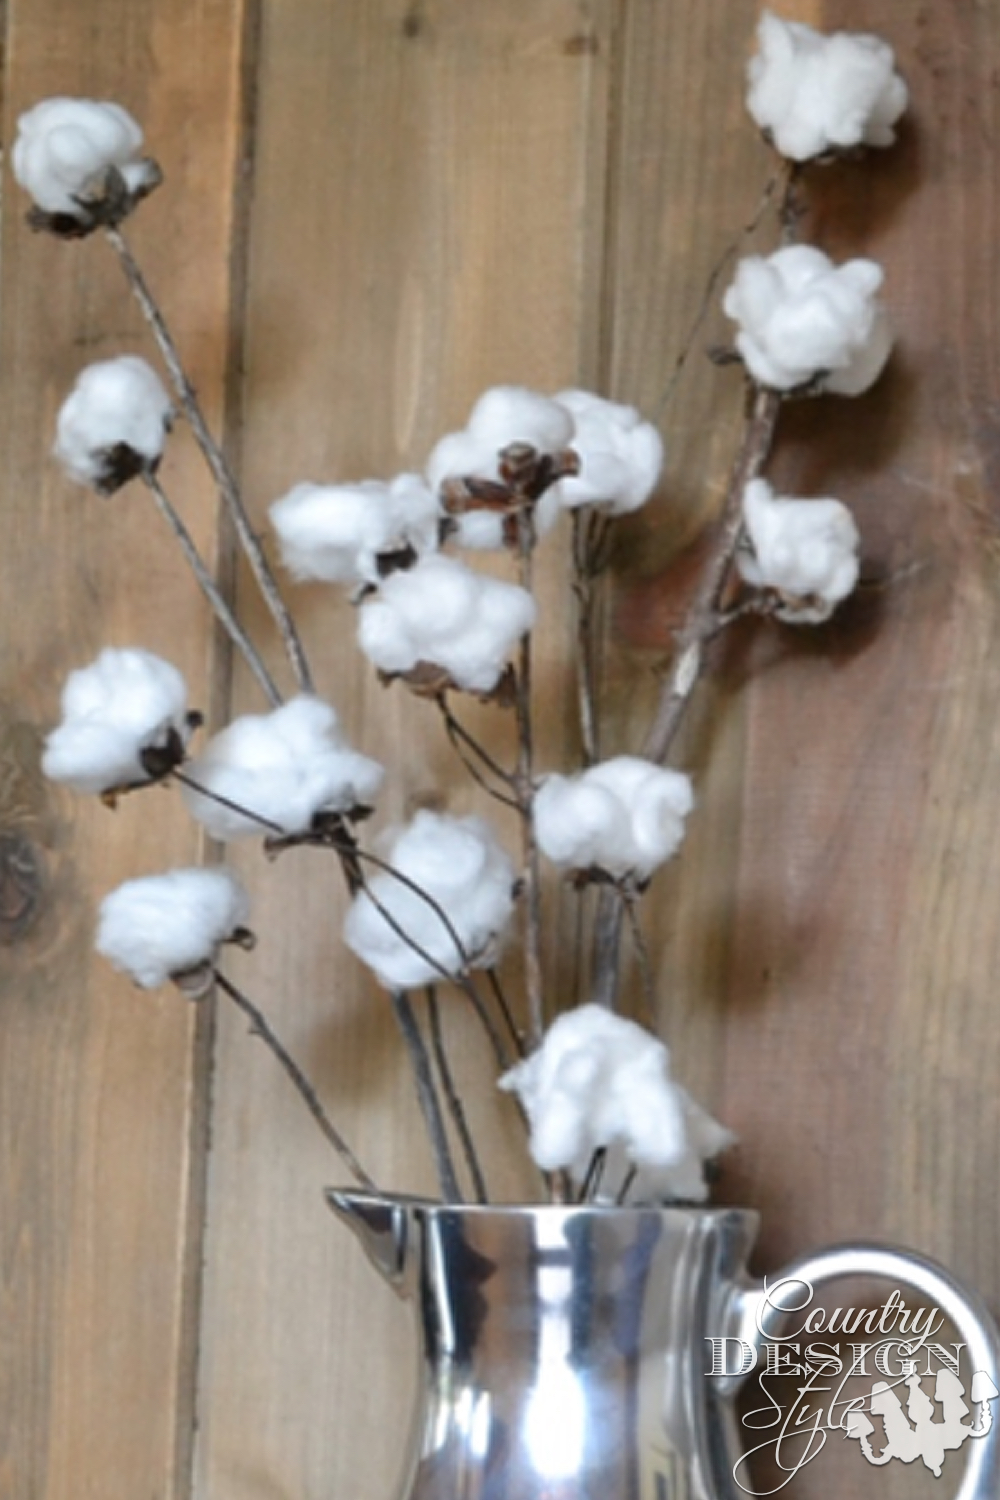 Cotton stems - Cotton ballspractical ideas ...